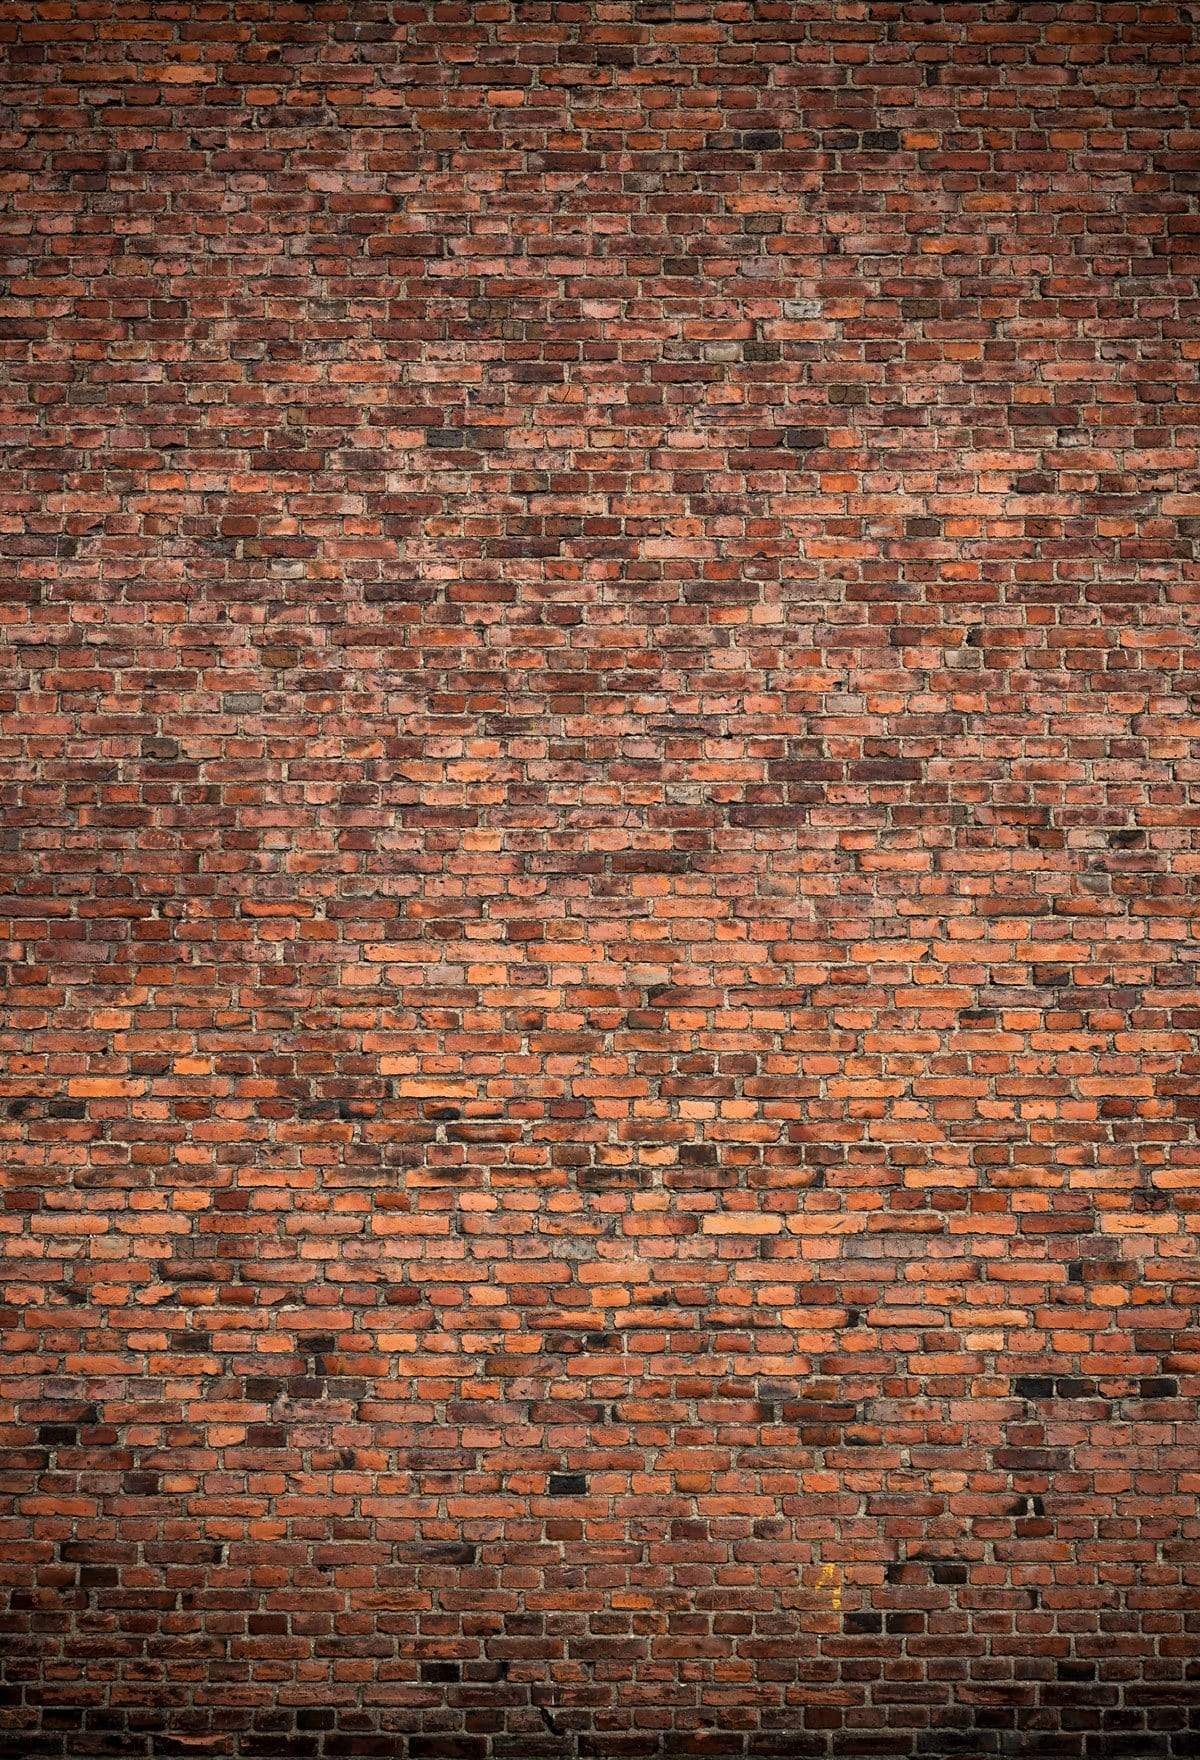 Load image into Gallery viewer, Katebackdrop£ºKate Brown Red Brick Wall Rustic Style Backdrop for photography